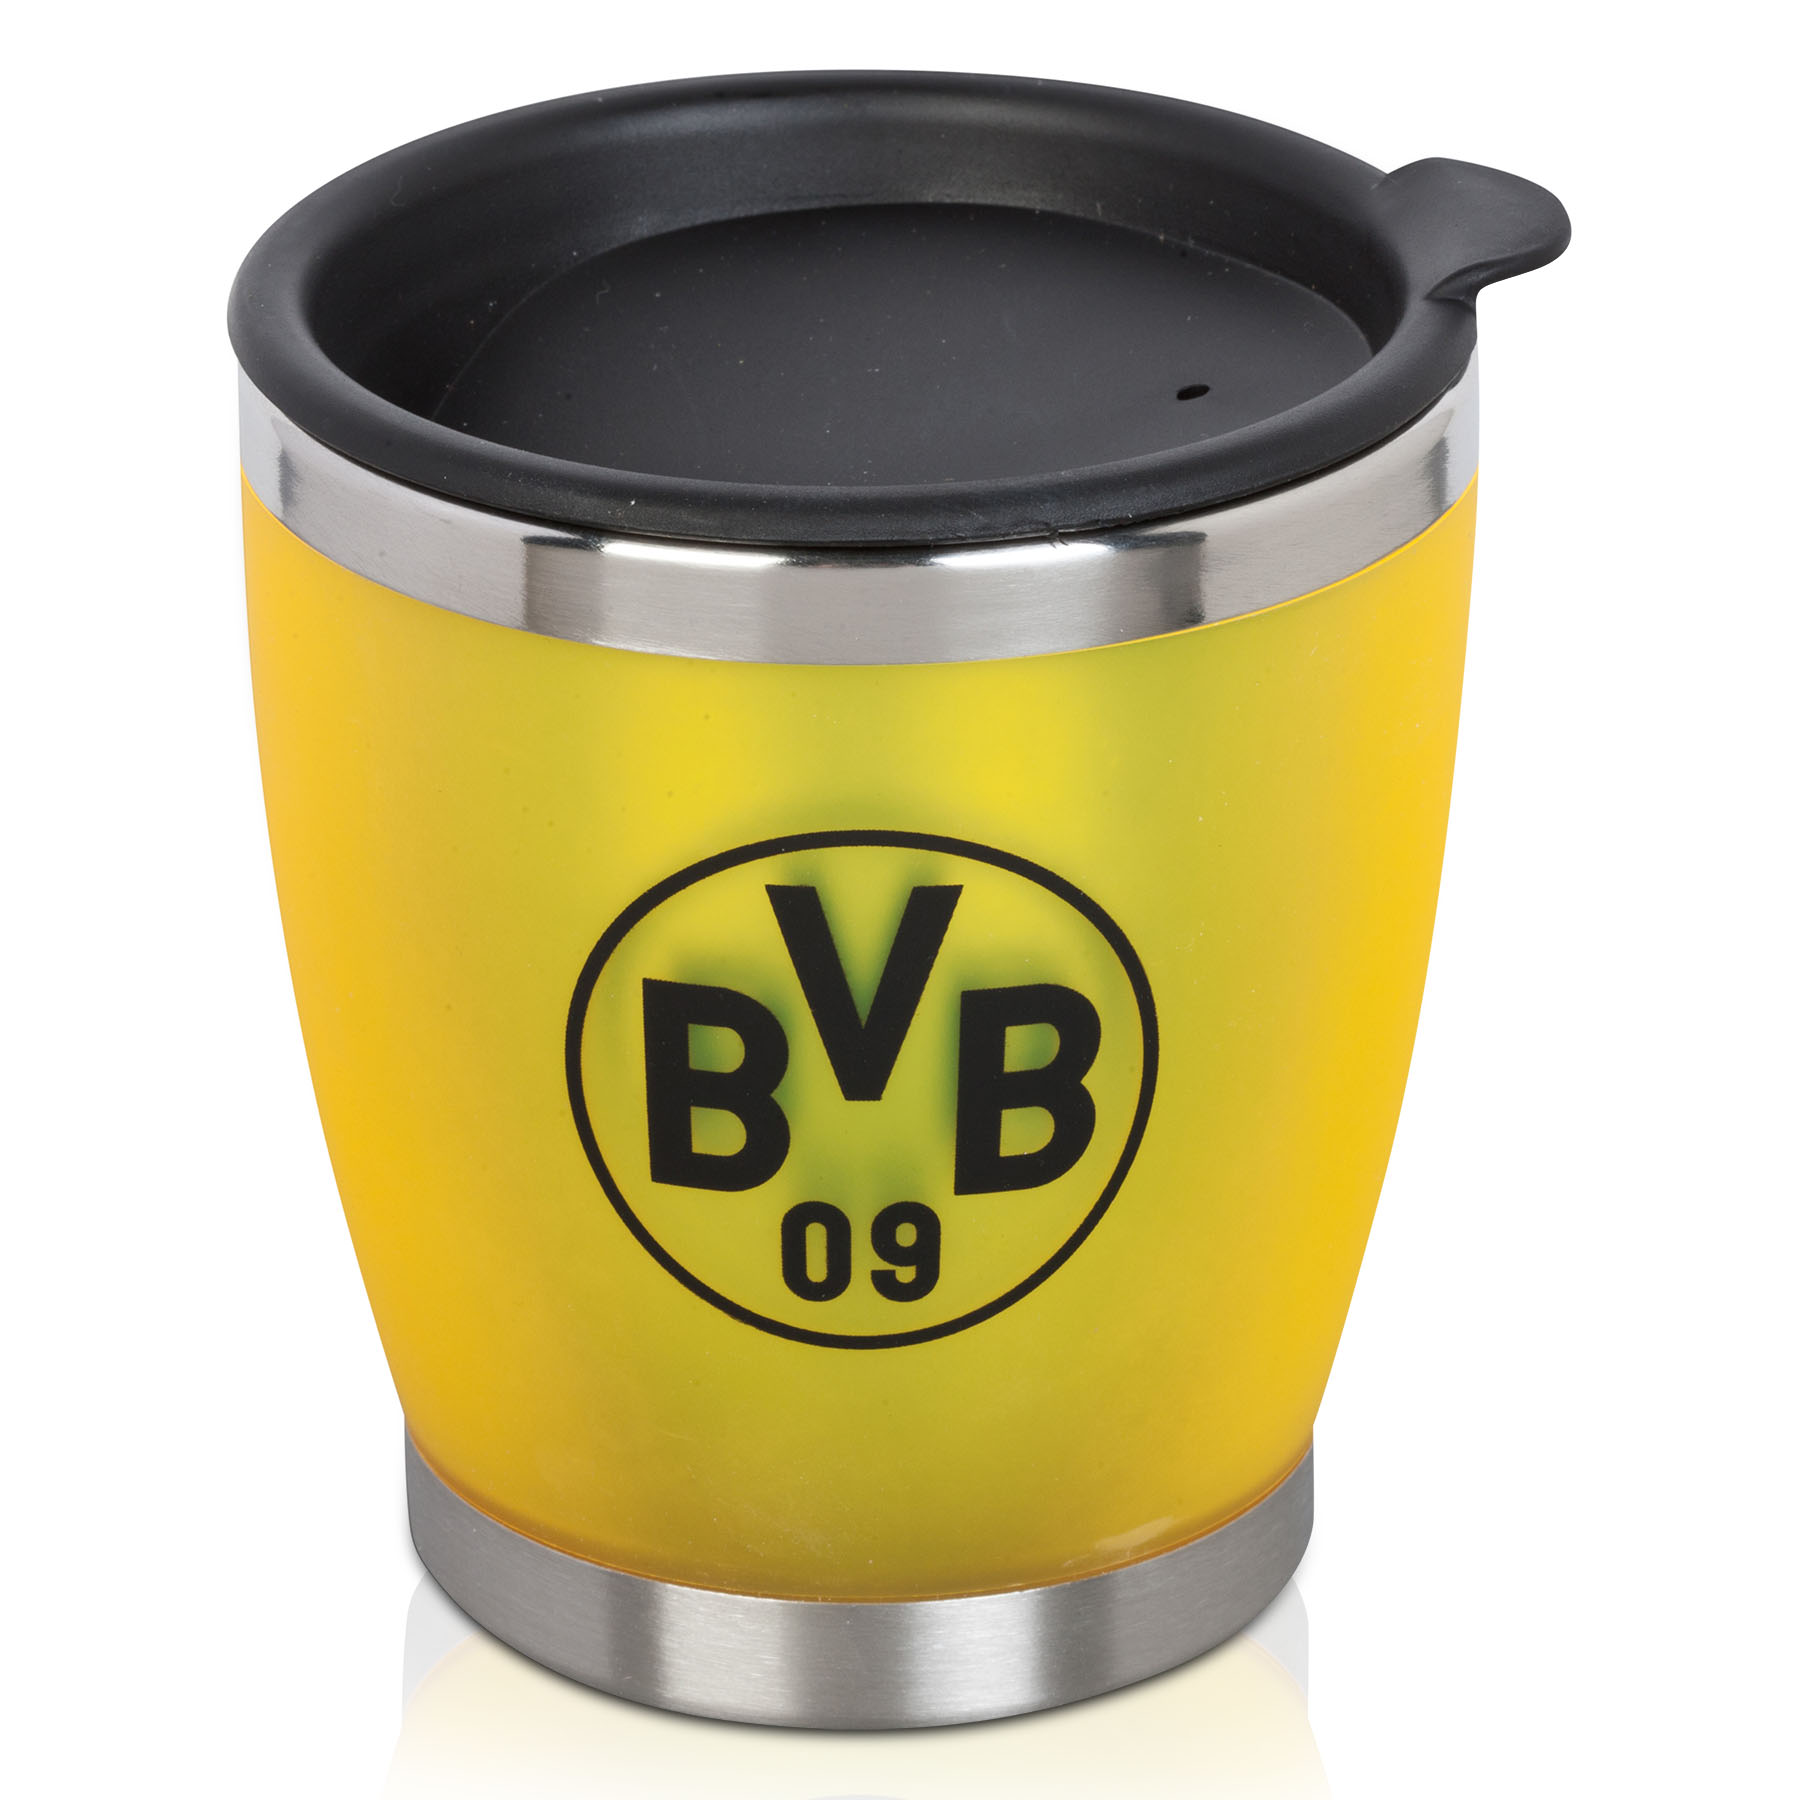 Image of BVB Coffee to go Cup - Small, Yellow